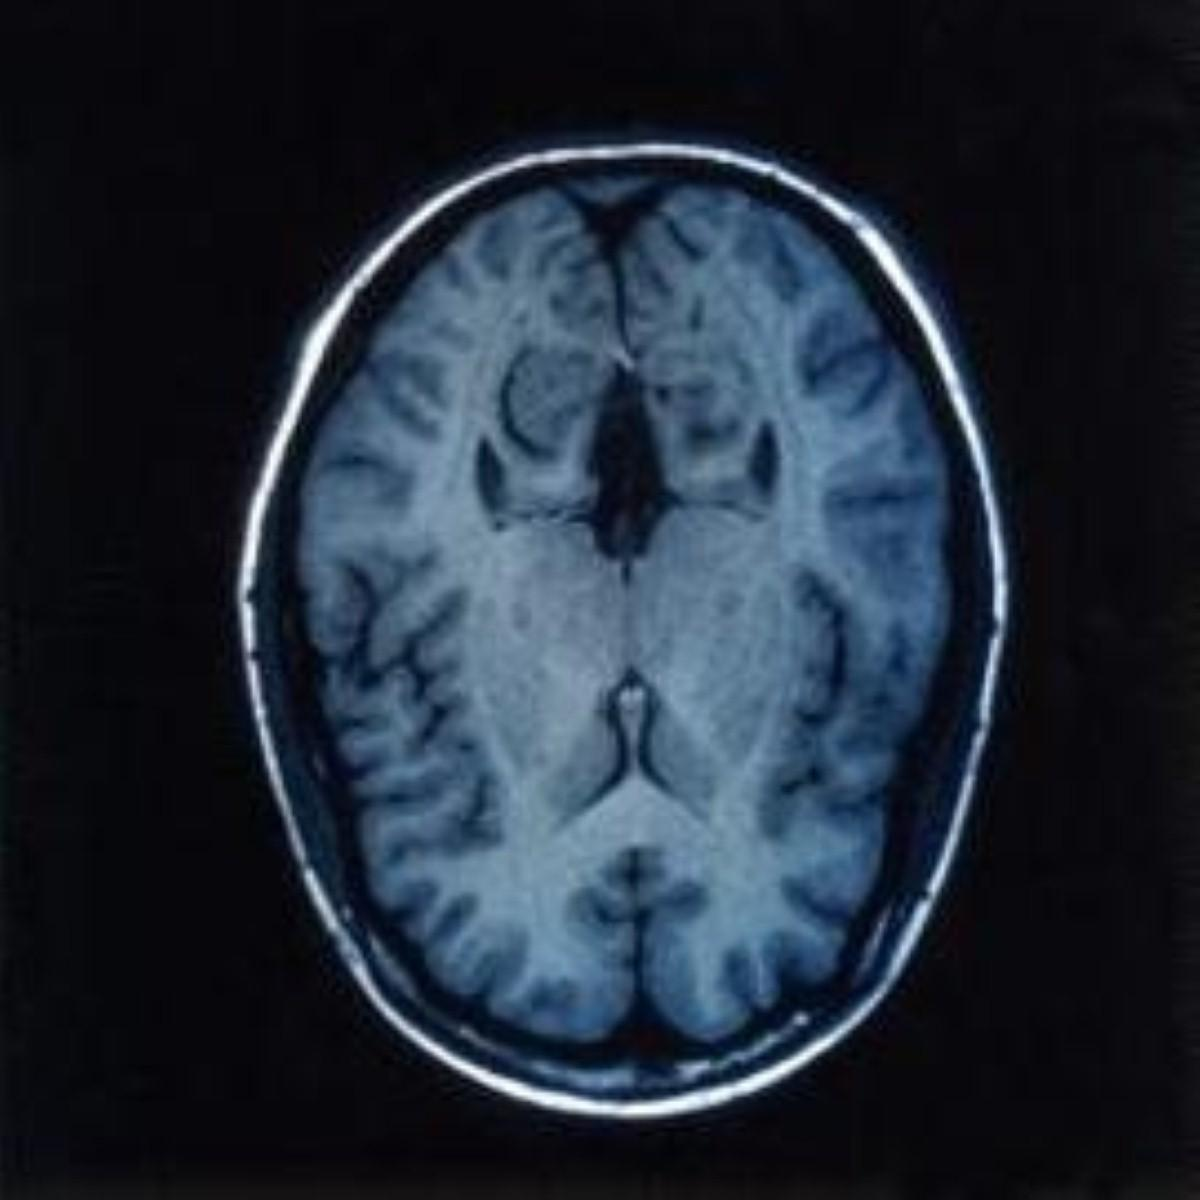 Alzheimer's risk doubled in traumatic brain injury patients, study shows